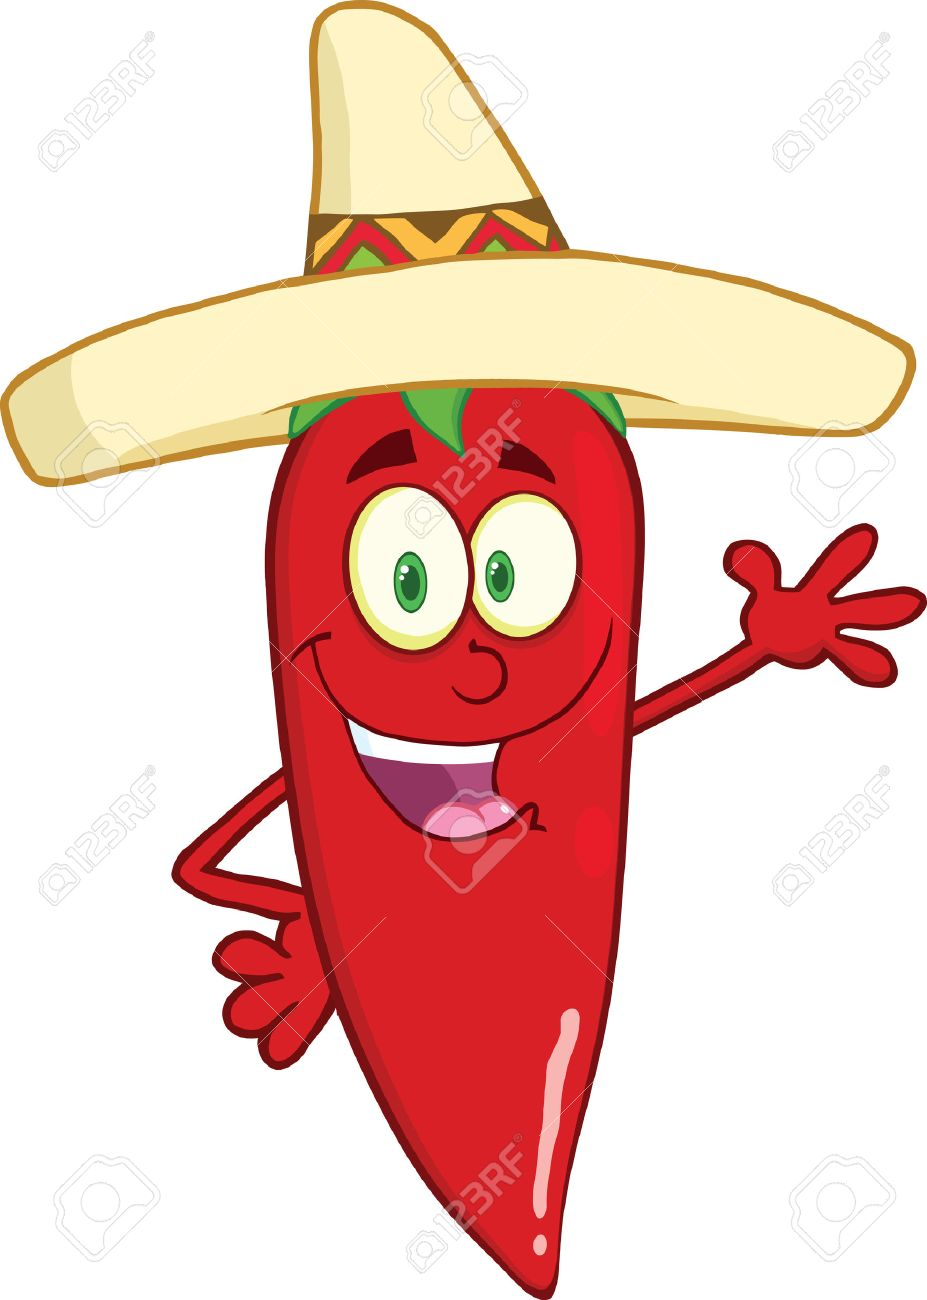 927x1300 Smiling Red Chili Pepper Cartoon Character With Mexican Hat Waving